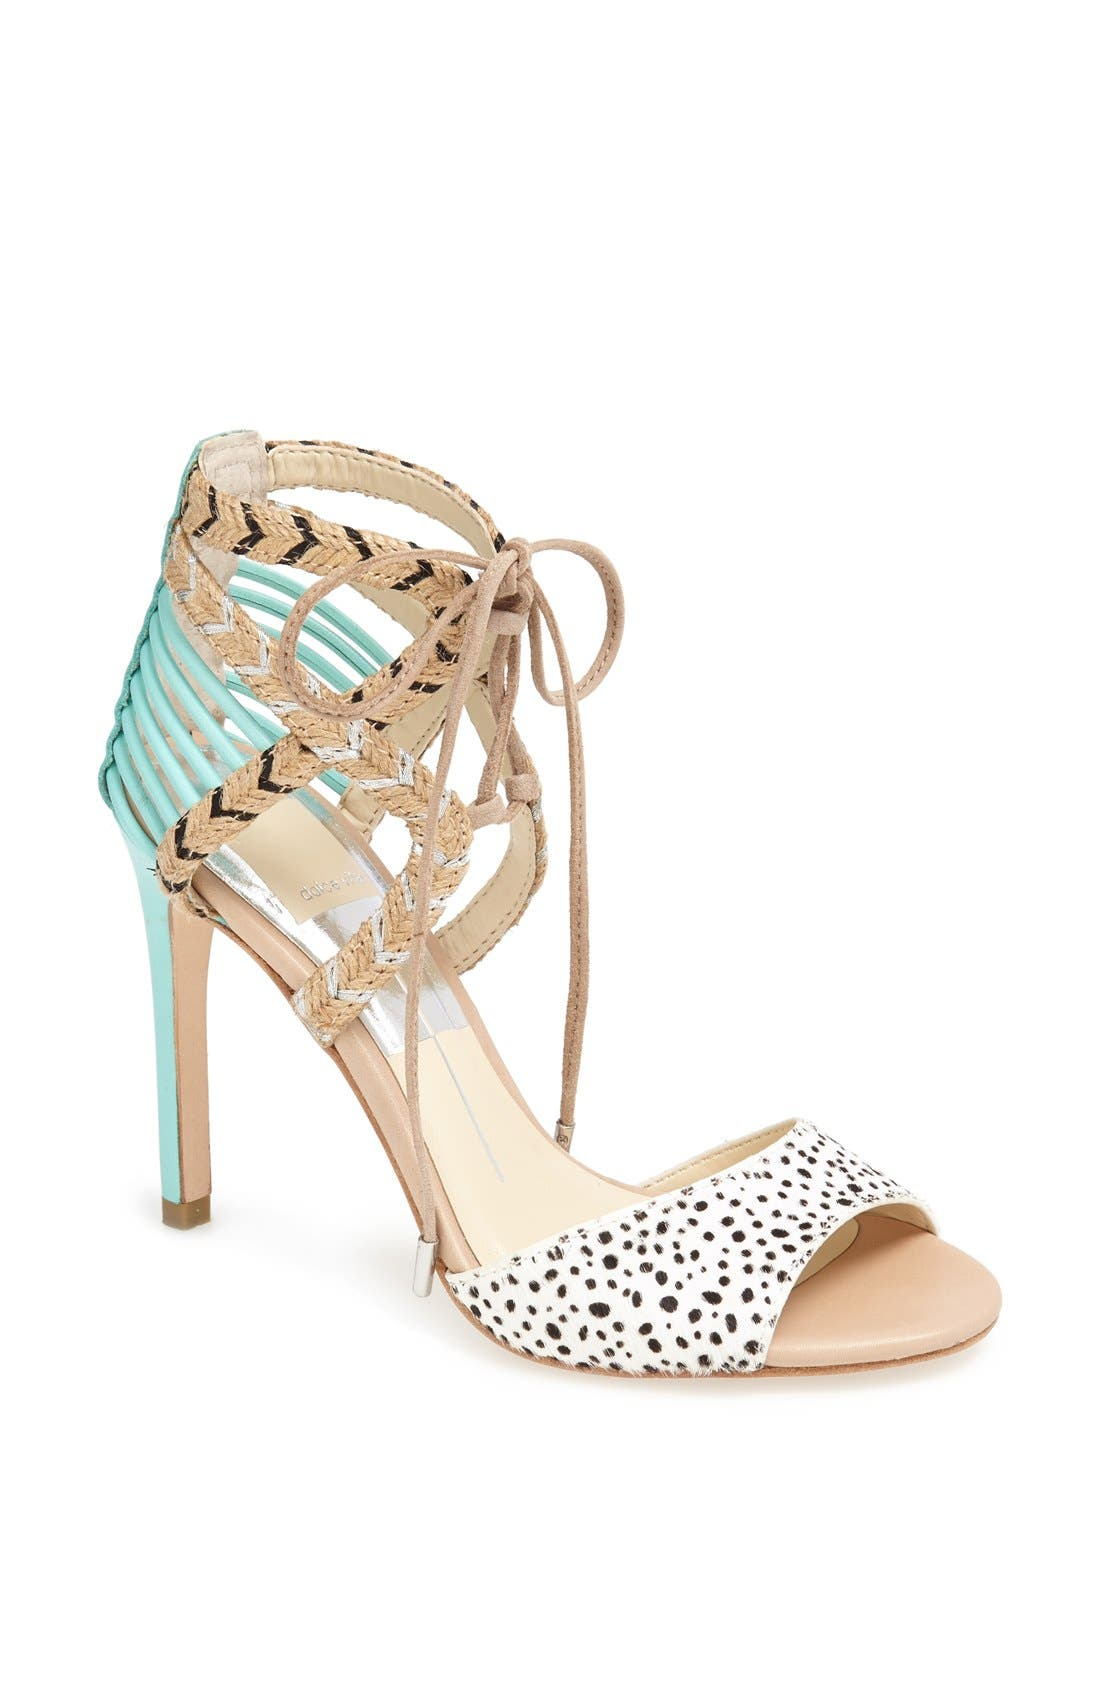 Main Image - Dolce Vita 'Hexen' Lace-Up Ankle Strap Sandal